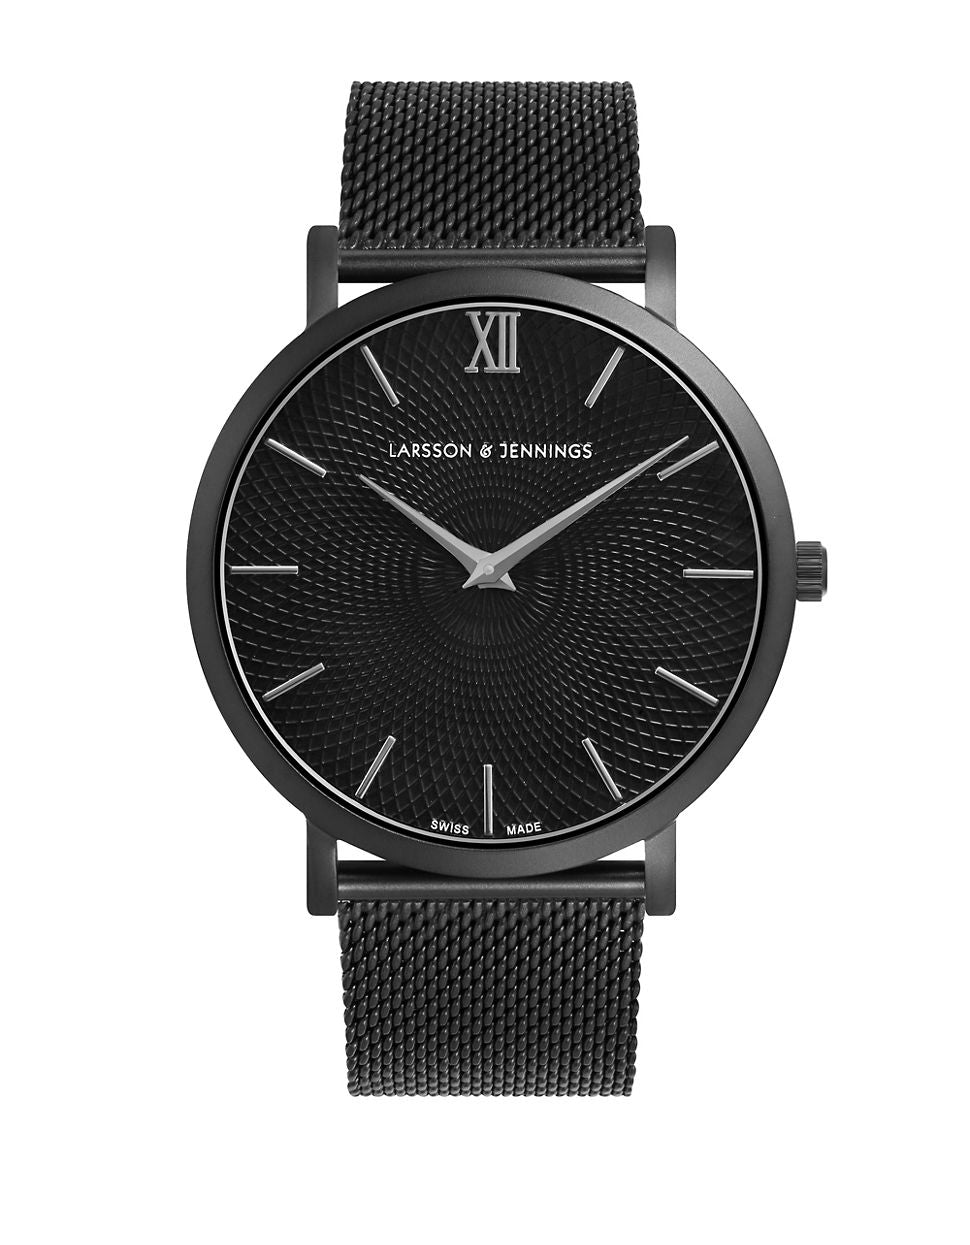 LARSSON AND JENNINGS 5th Anniversary Lugano Black PVD Stainless Steel Milanese Strap Watch